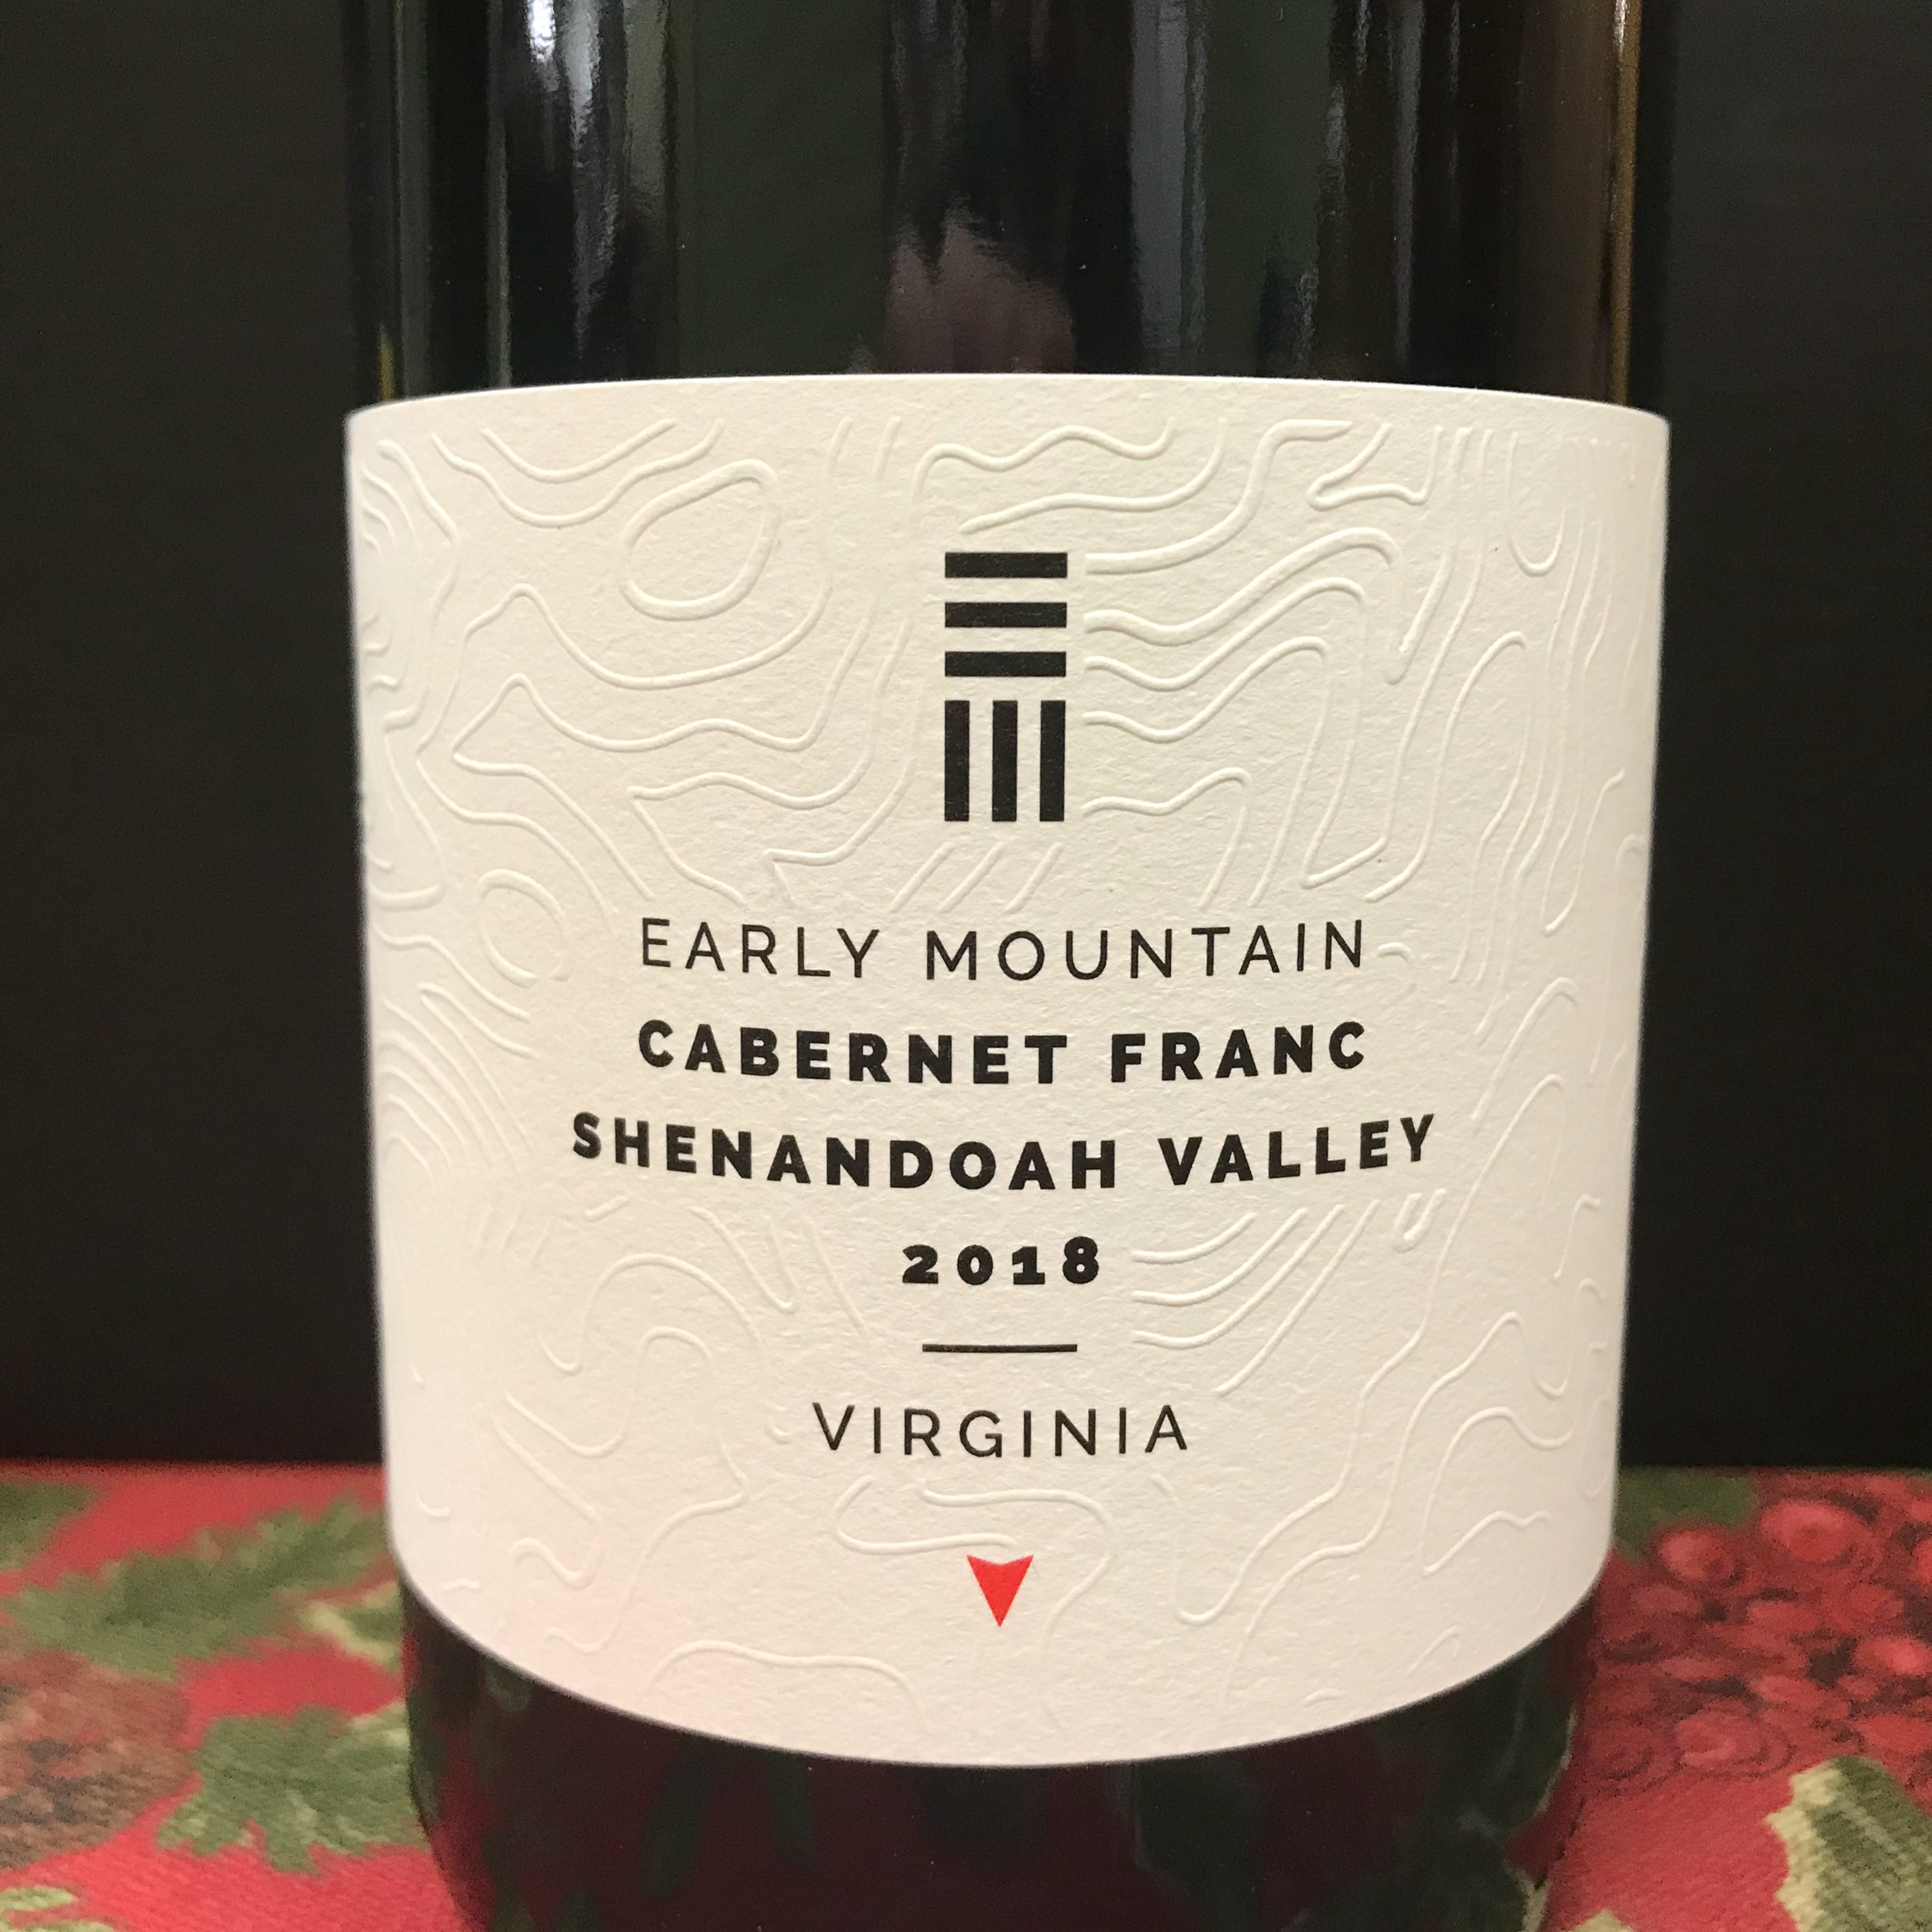 Early Mountain Cabernet Franc Shenandoah Valley 2018